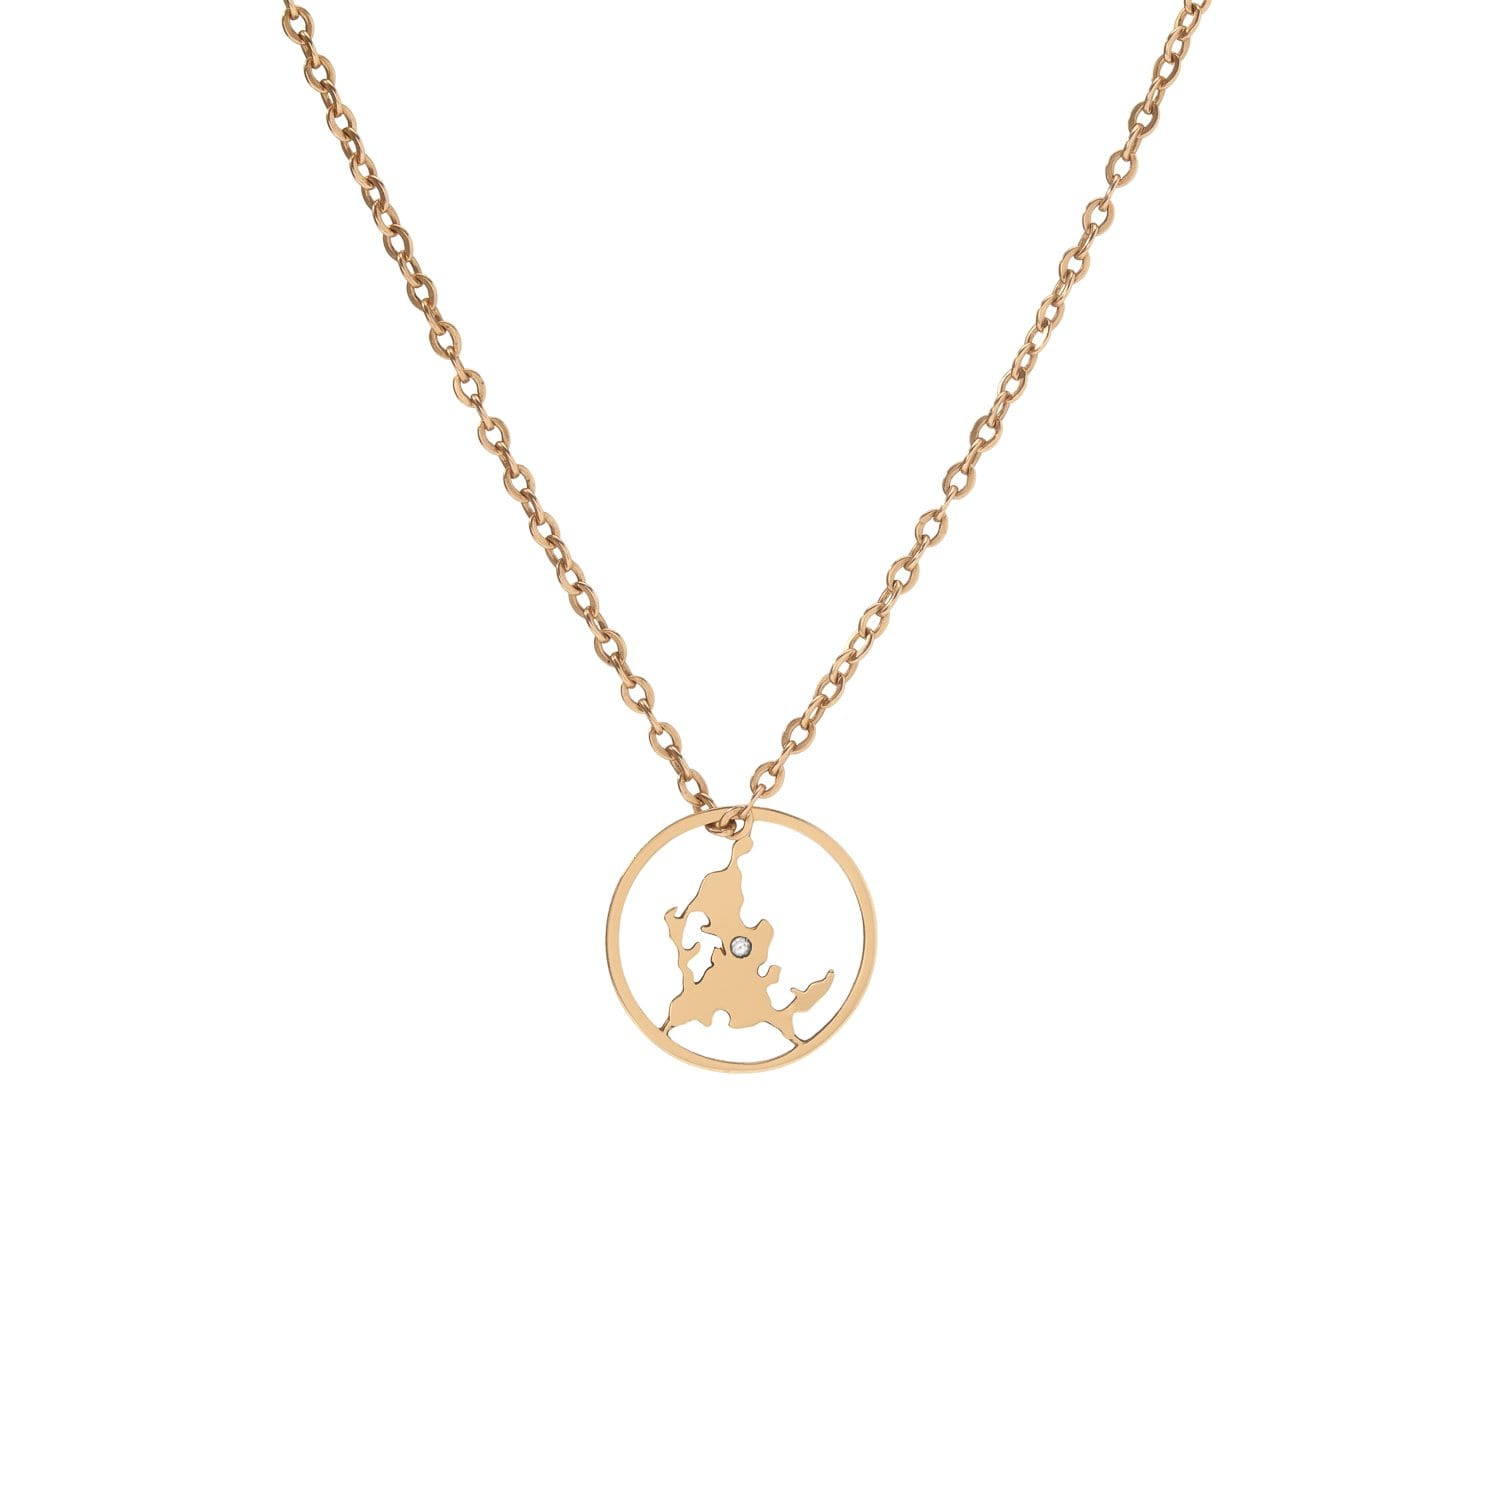 CD Charms | Shelter Island Chained Necklace | Catherine Demarchelier